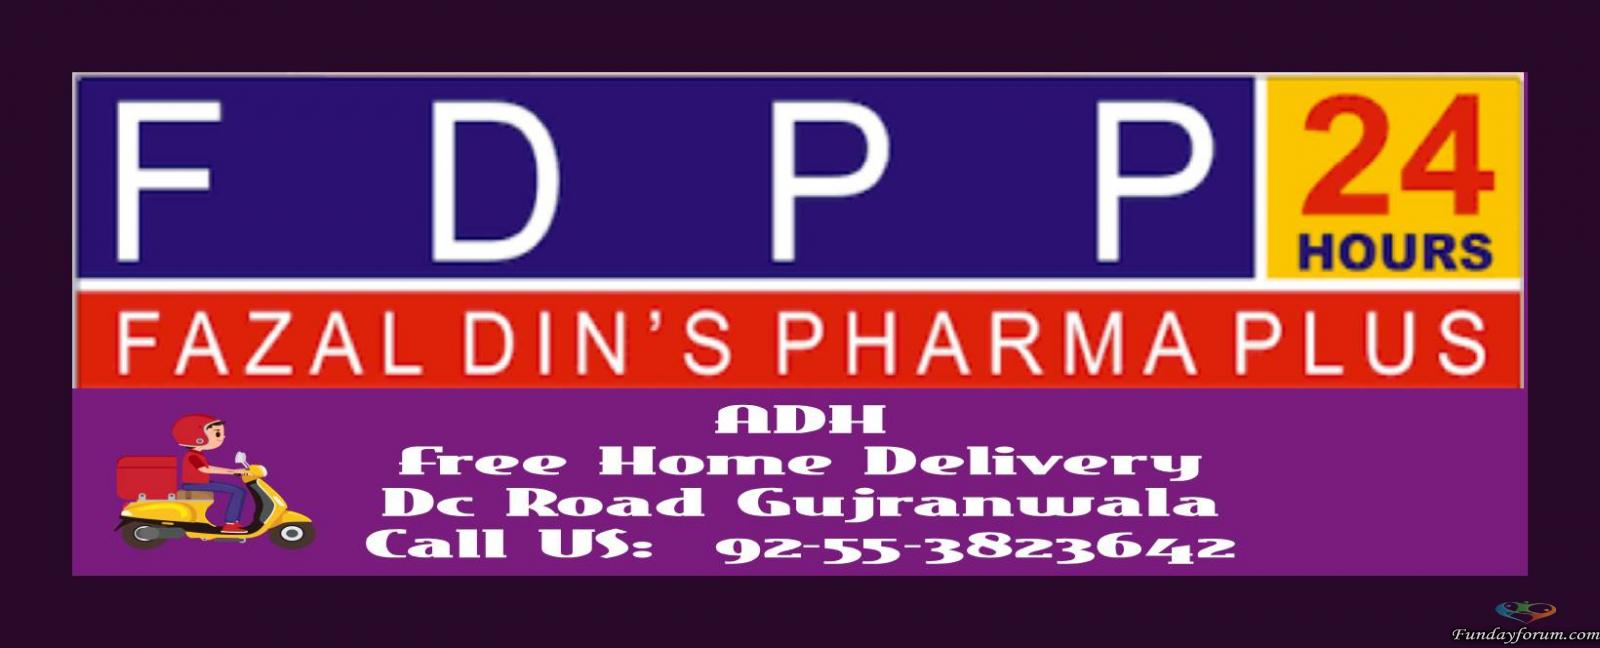 Fazal Din Pharmacy Dc Road Gujranwala